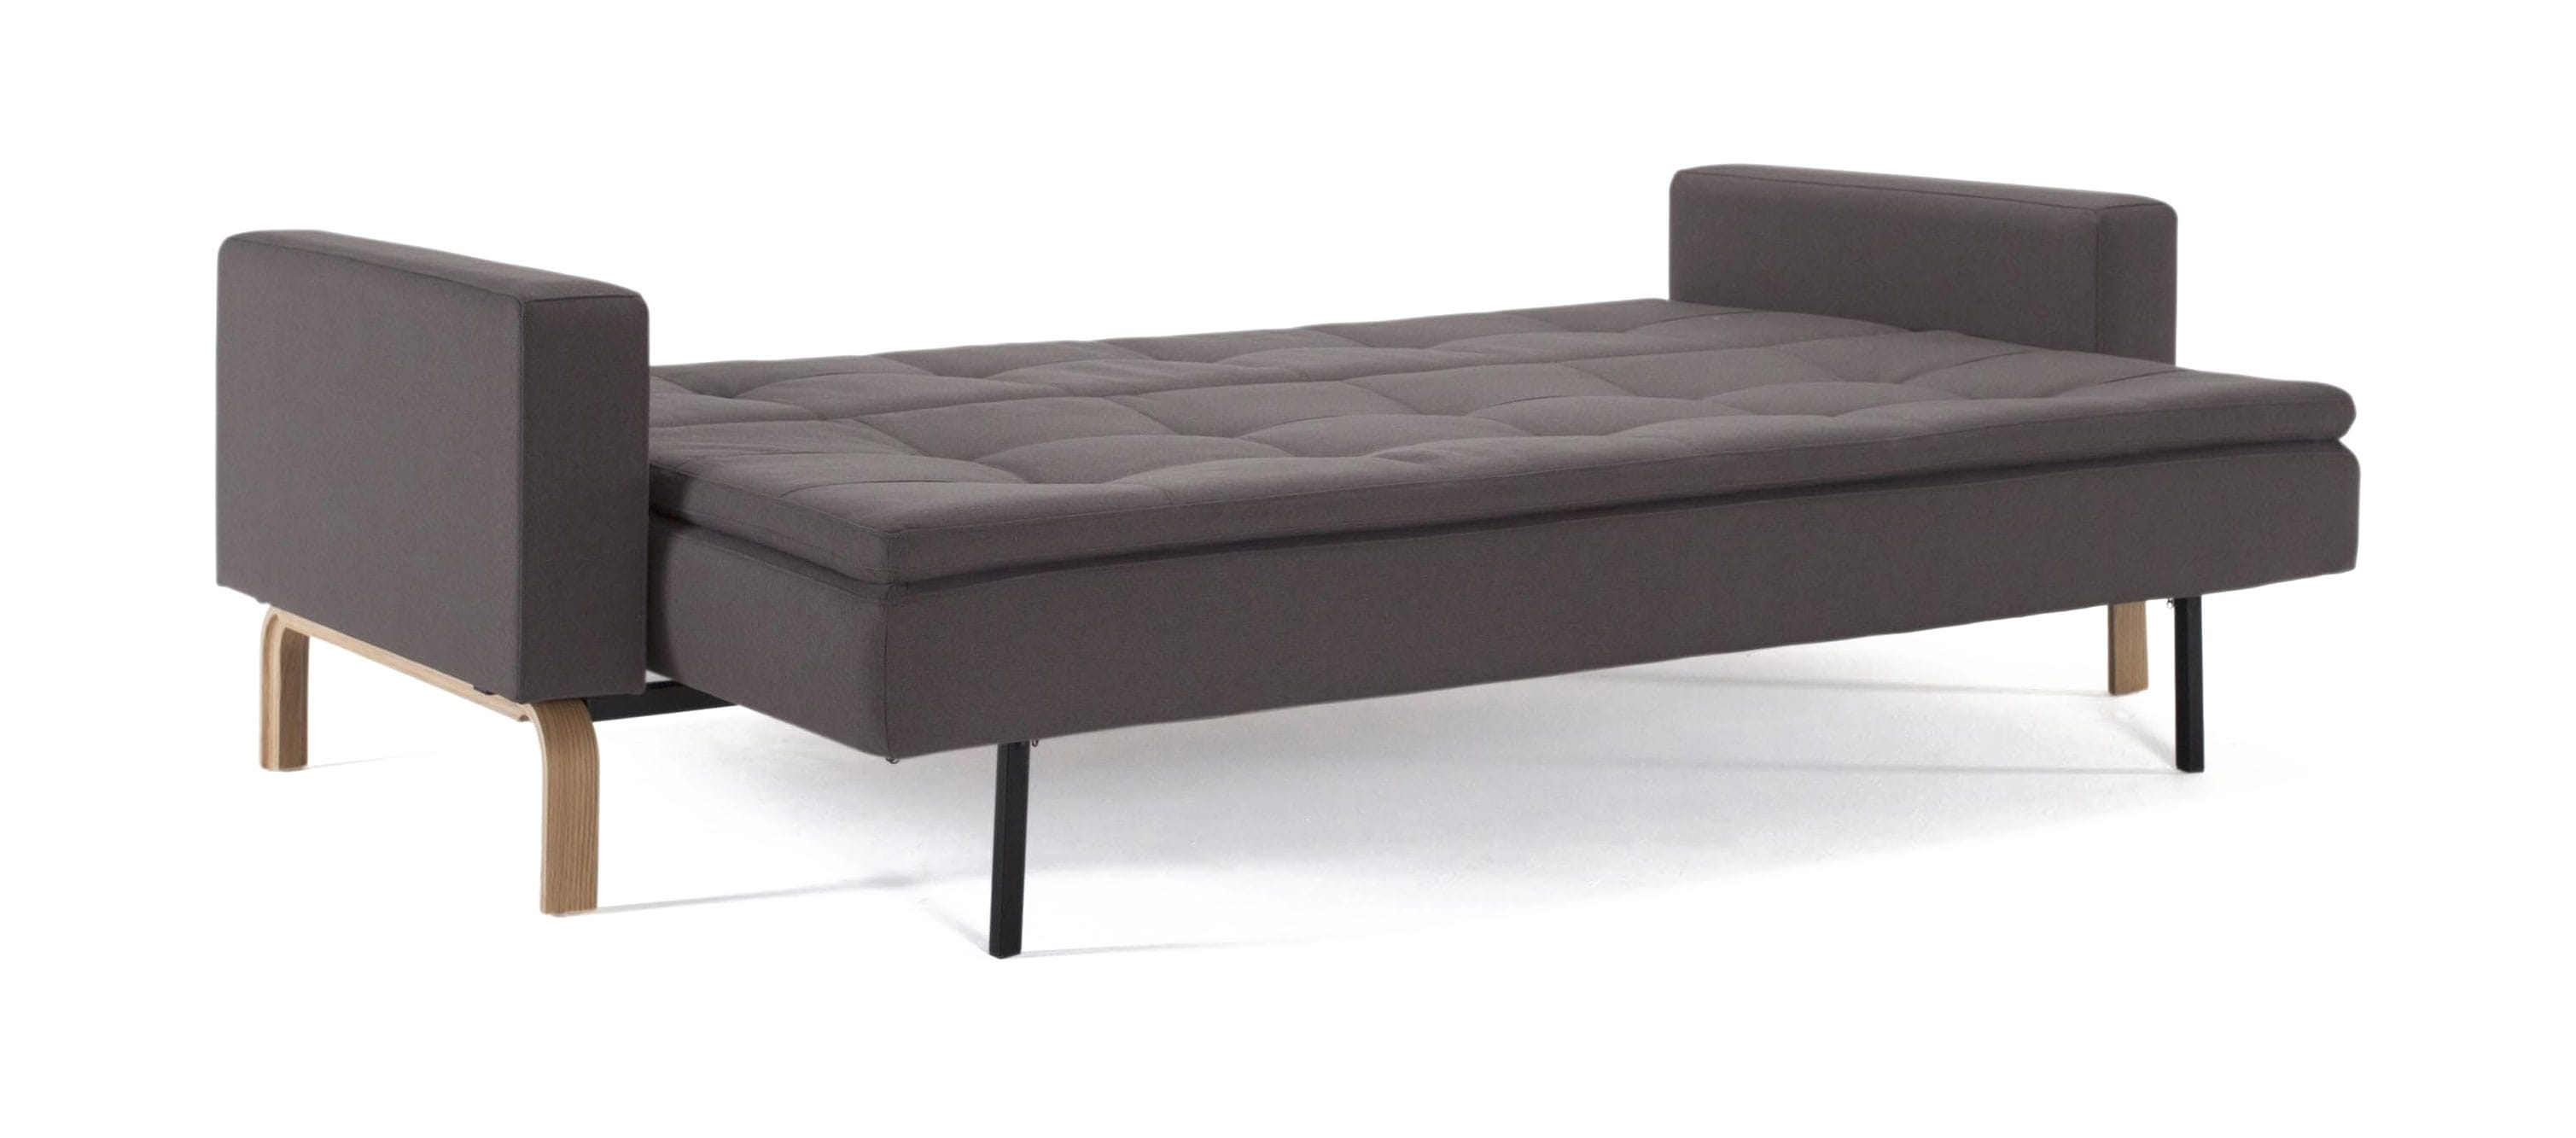 Cassius Dual Sofa Bed W/Arms (Full Size) Soft Gray By Innovation (